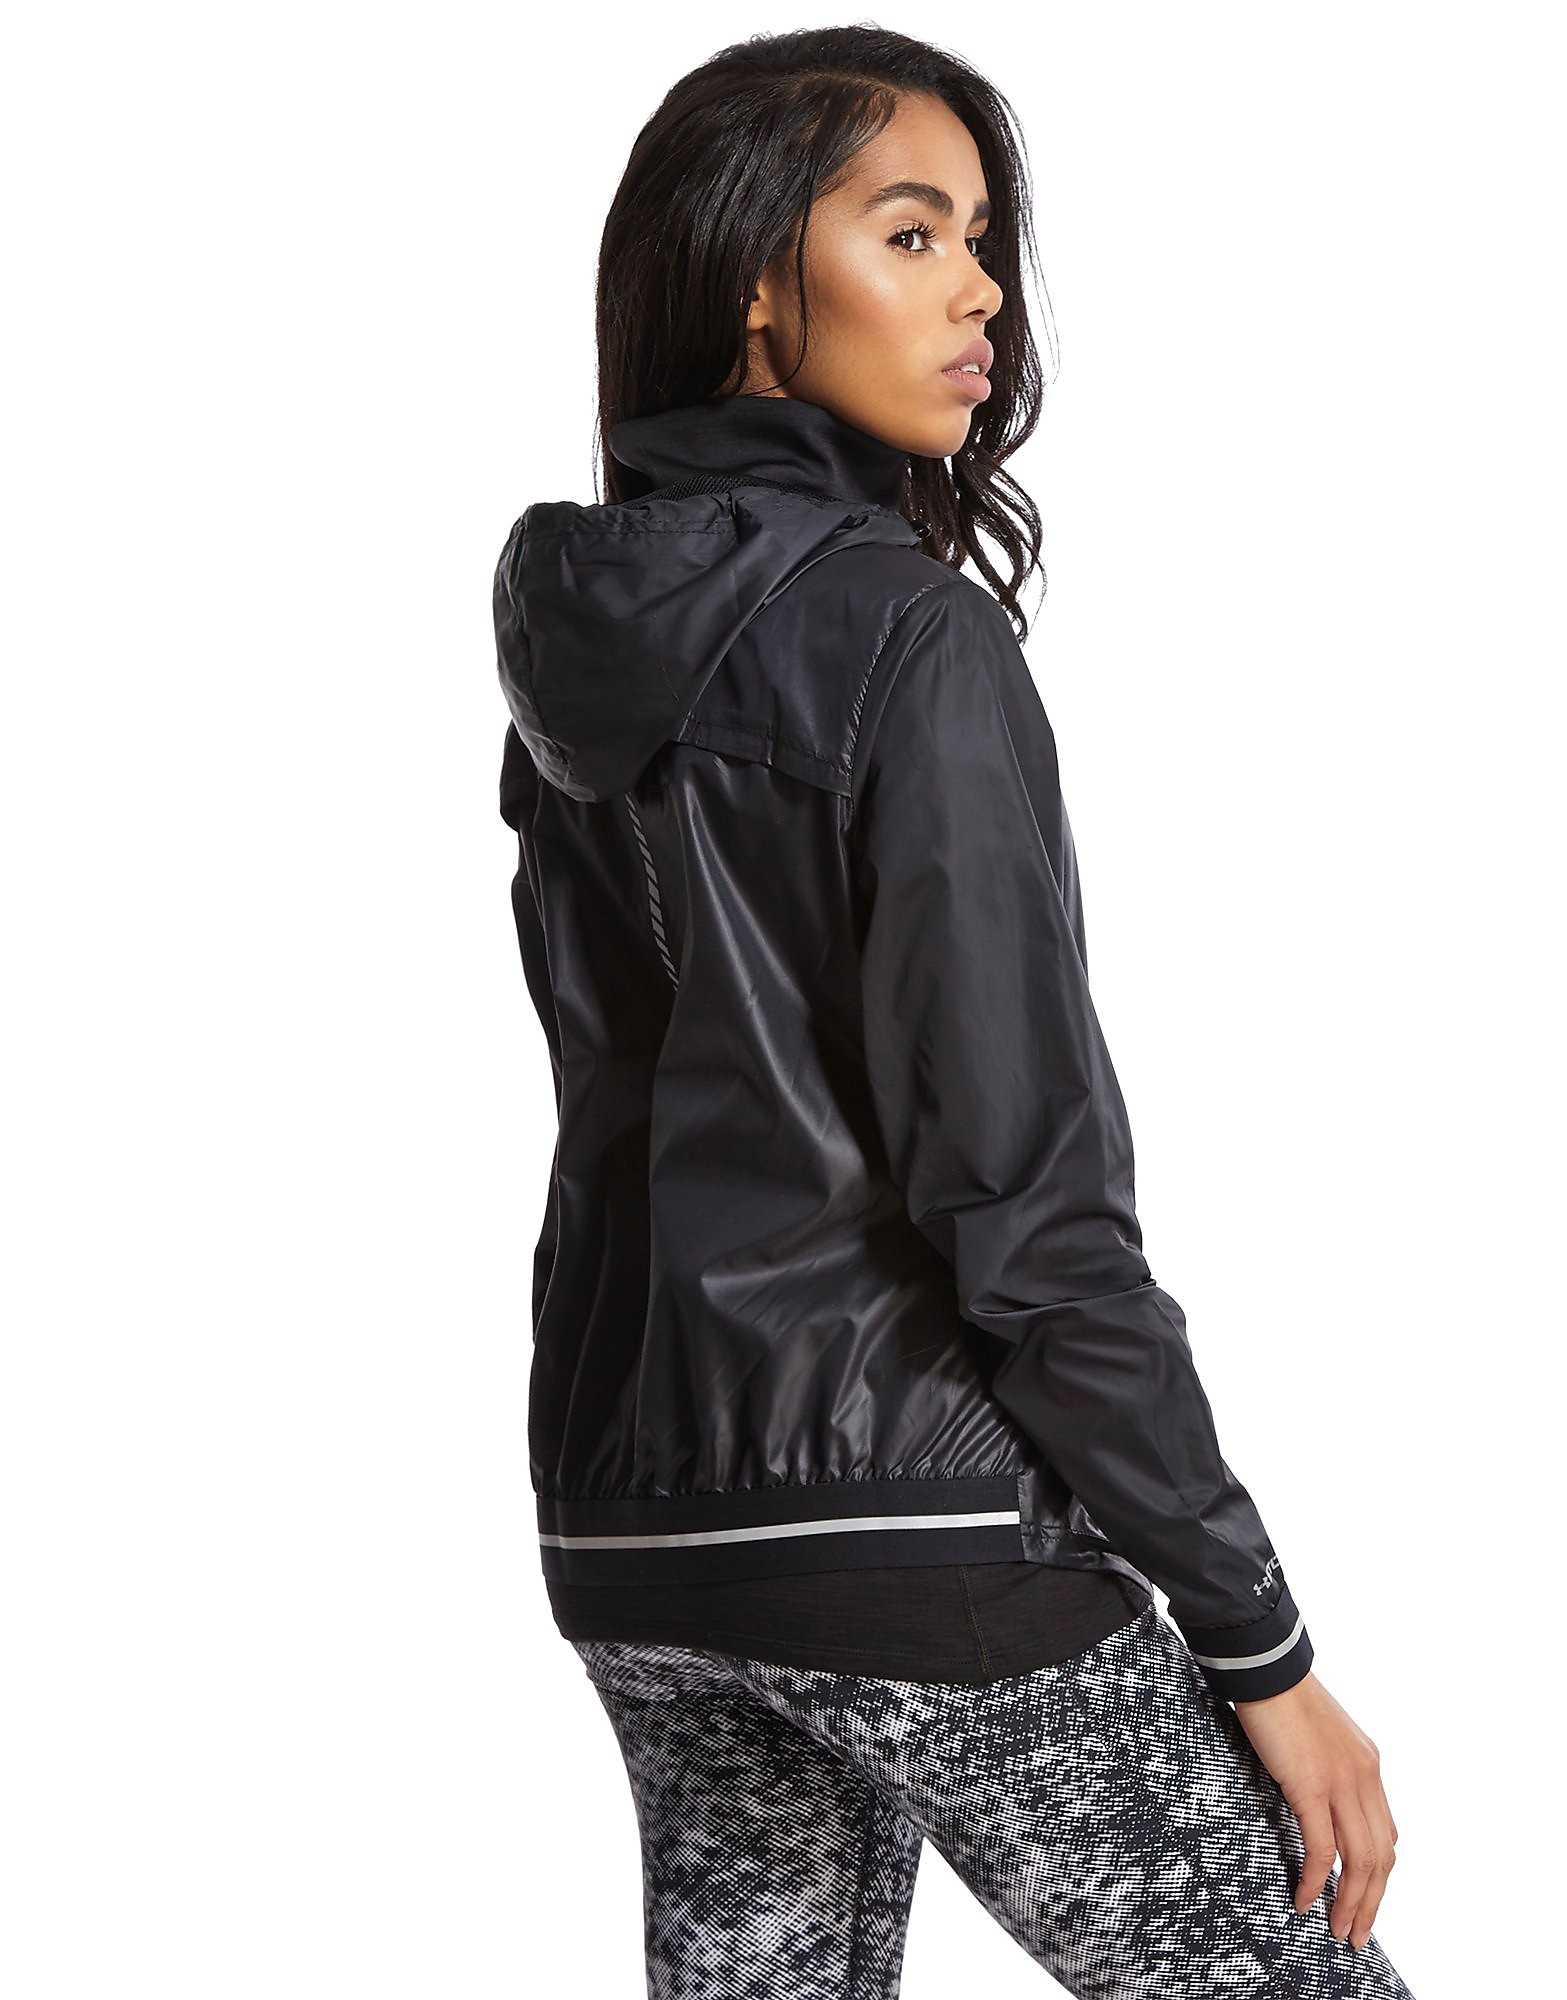 Under Armour Storm Layered Up Jacket